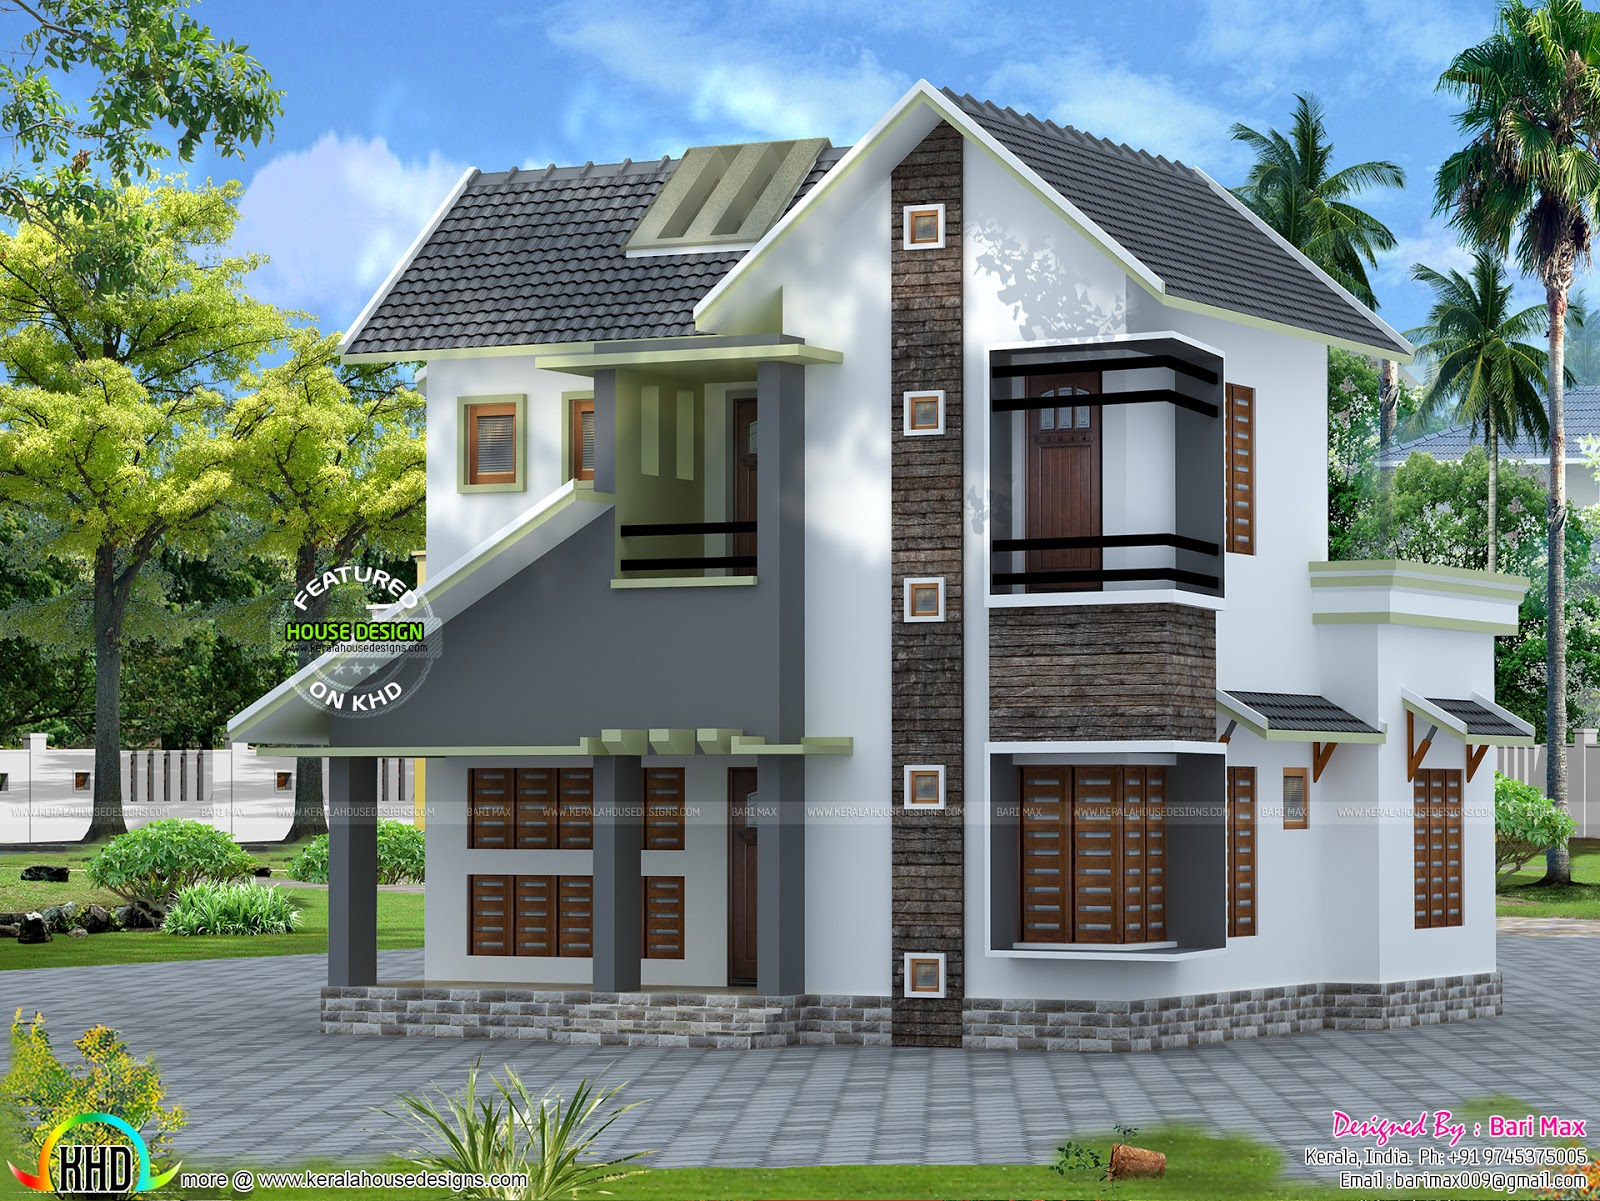 Slope roof low cost home design kerala home design and for Low cost home construction